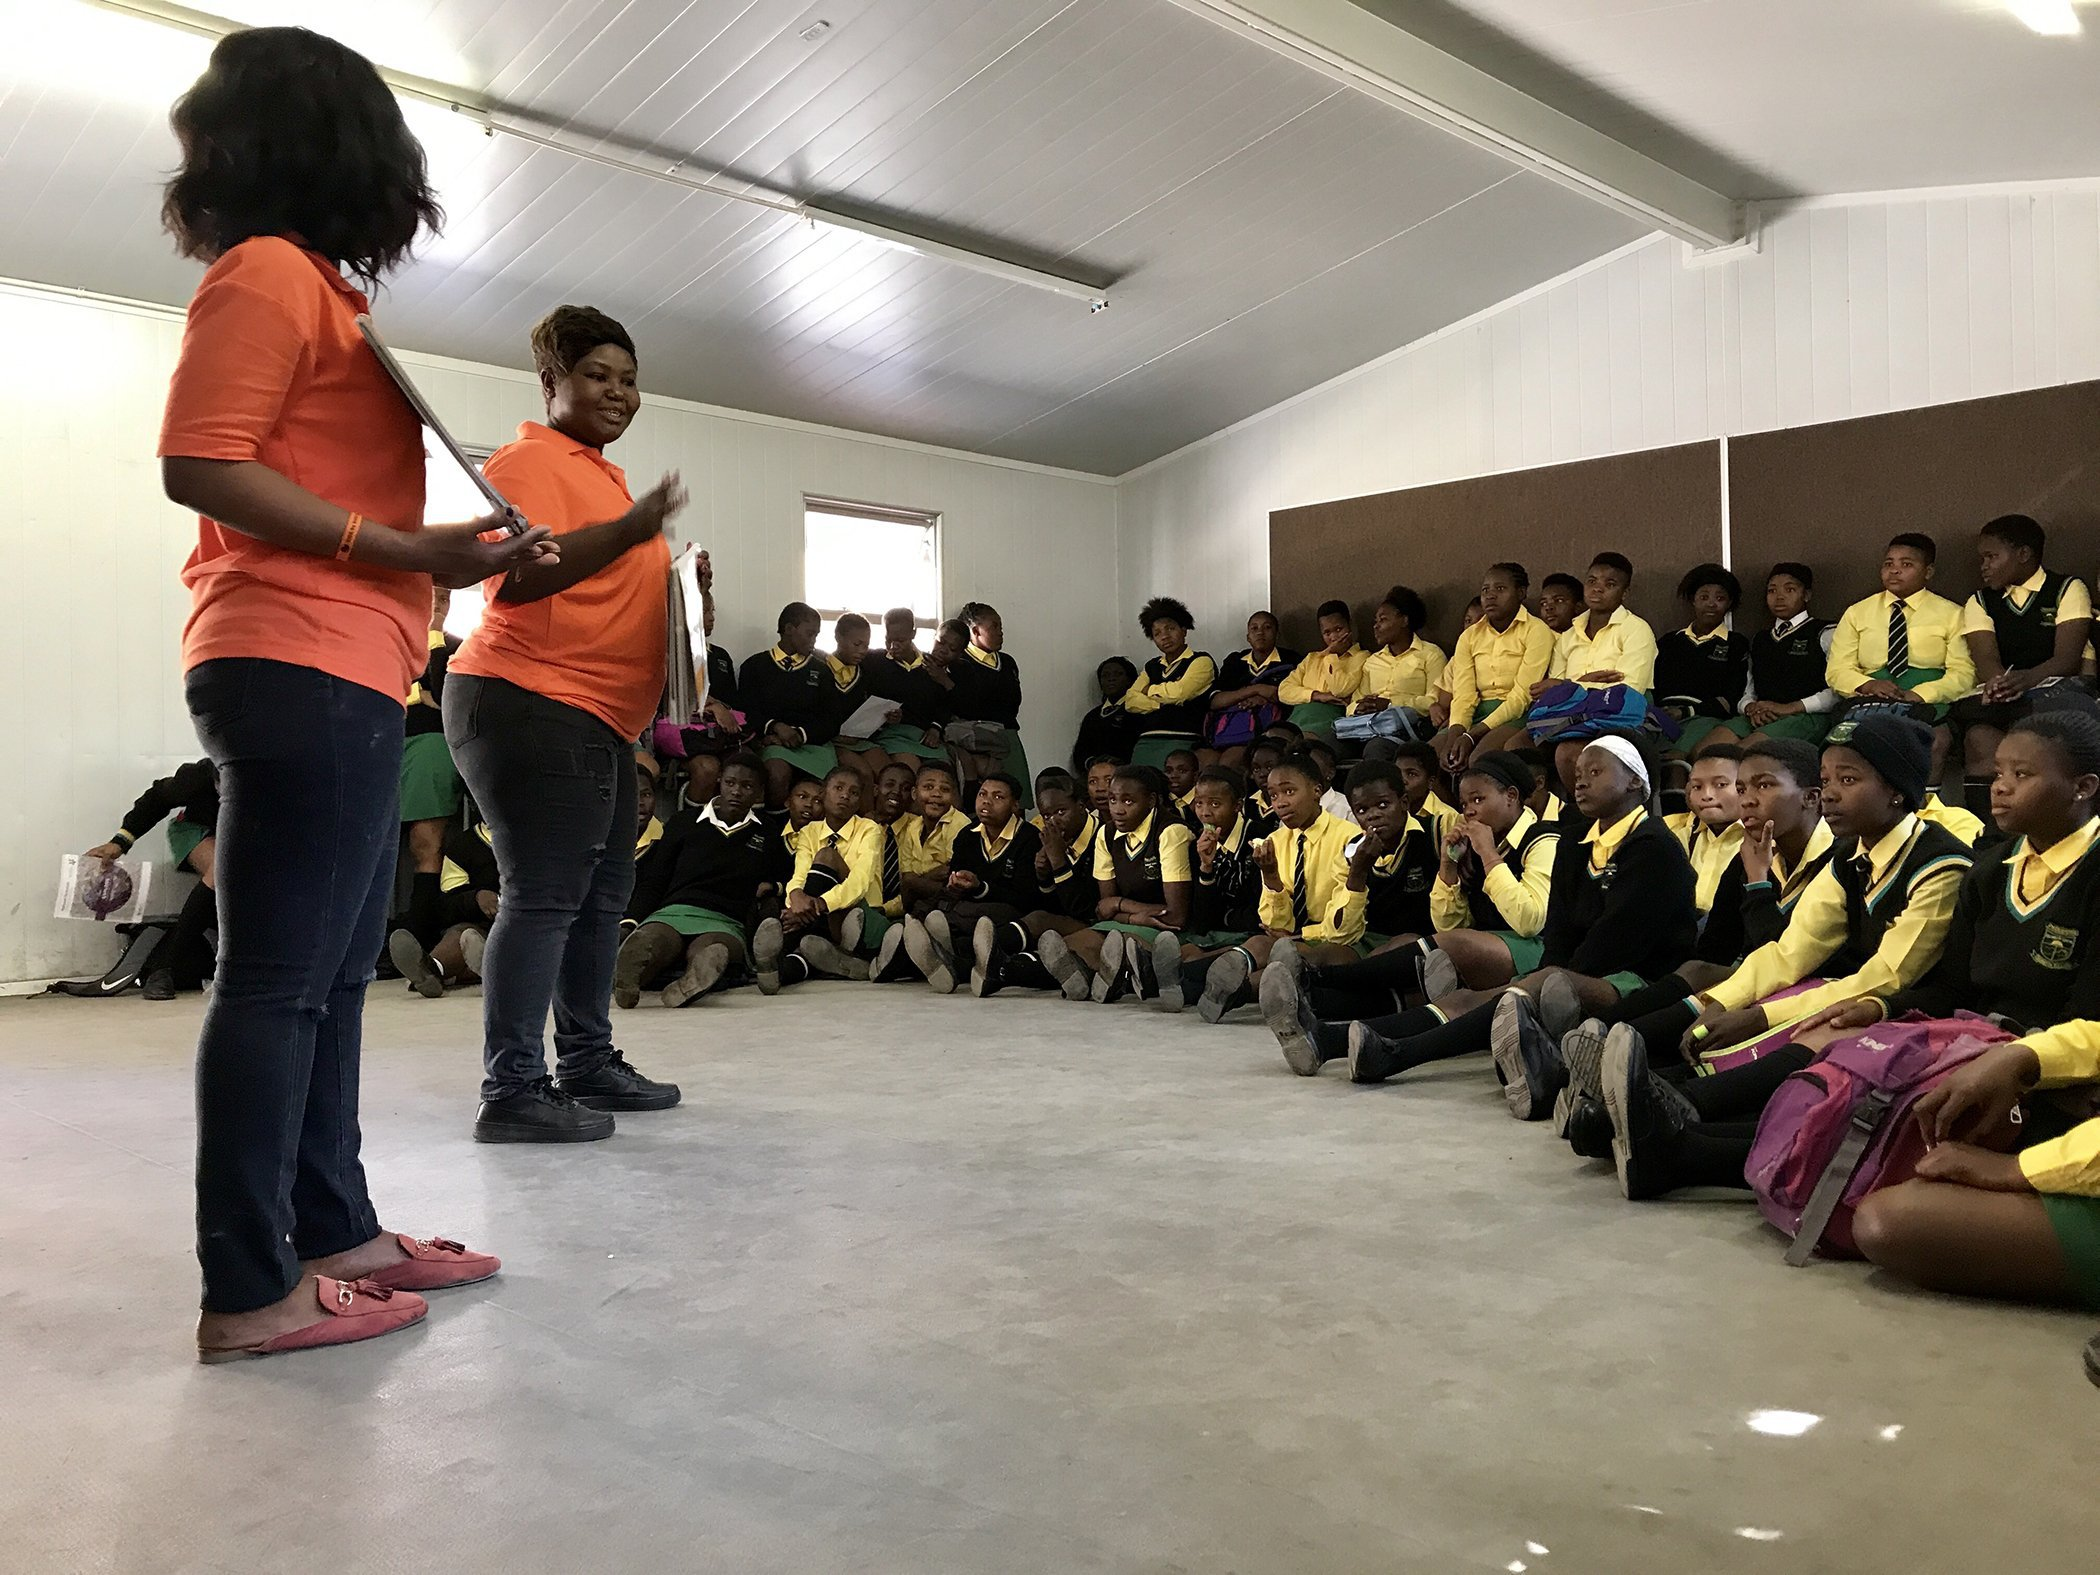 south-africa-mhm-schools-ambassadors-teaching-004.jpg__2100x1575_q85_crop_subject_location-1050,790_subsampling-2_upscale.jpg